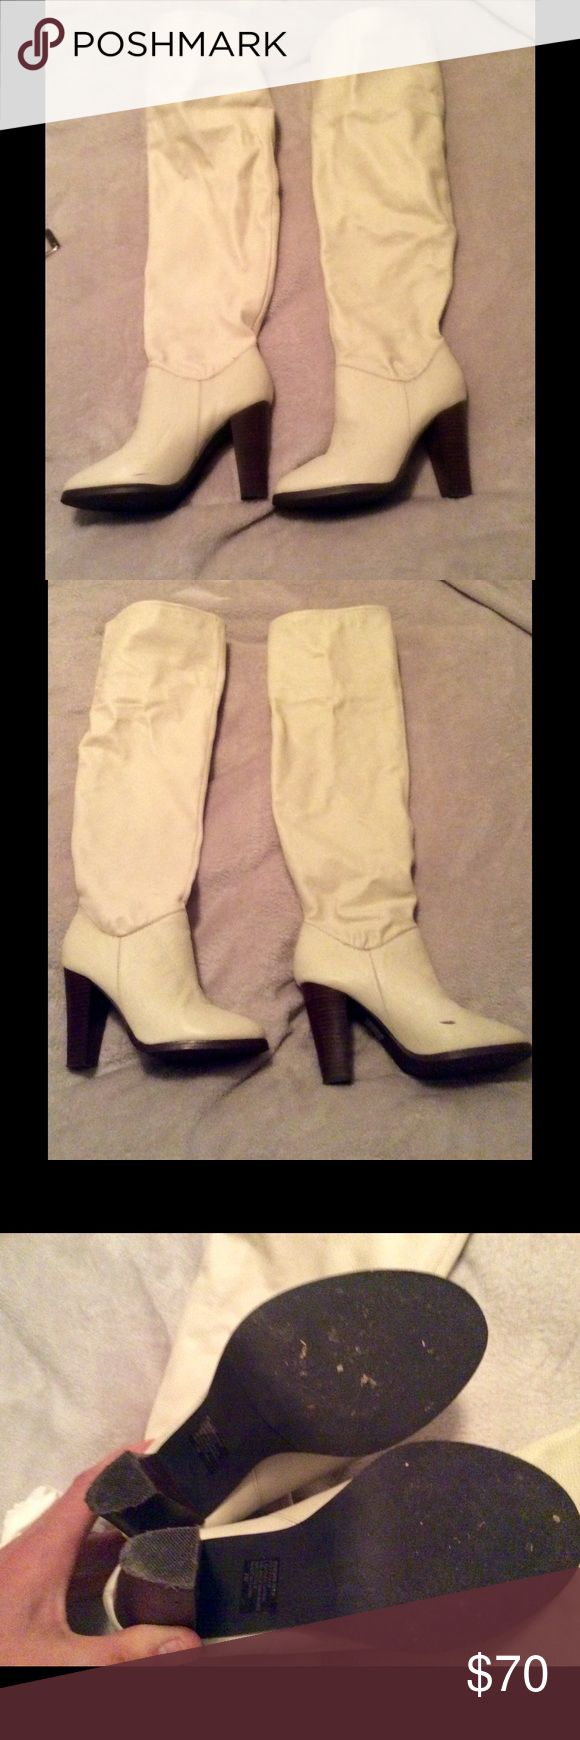 VICTORIA SECRET DESIGNER COLIN STUART BOOTS LITERALLY WORN TWICE! COLIN STUART IVORY LEATHER BOOTS! Absolutely mint condition! Colin Stuart Shoes Over the Knee Boots